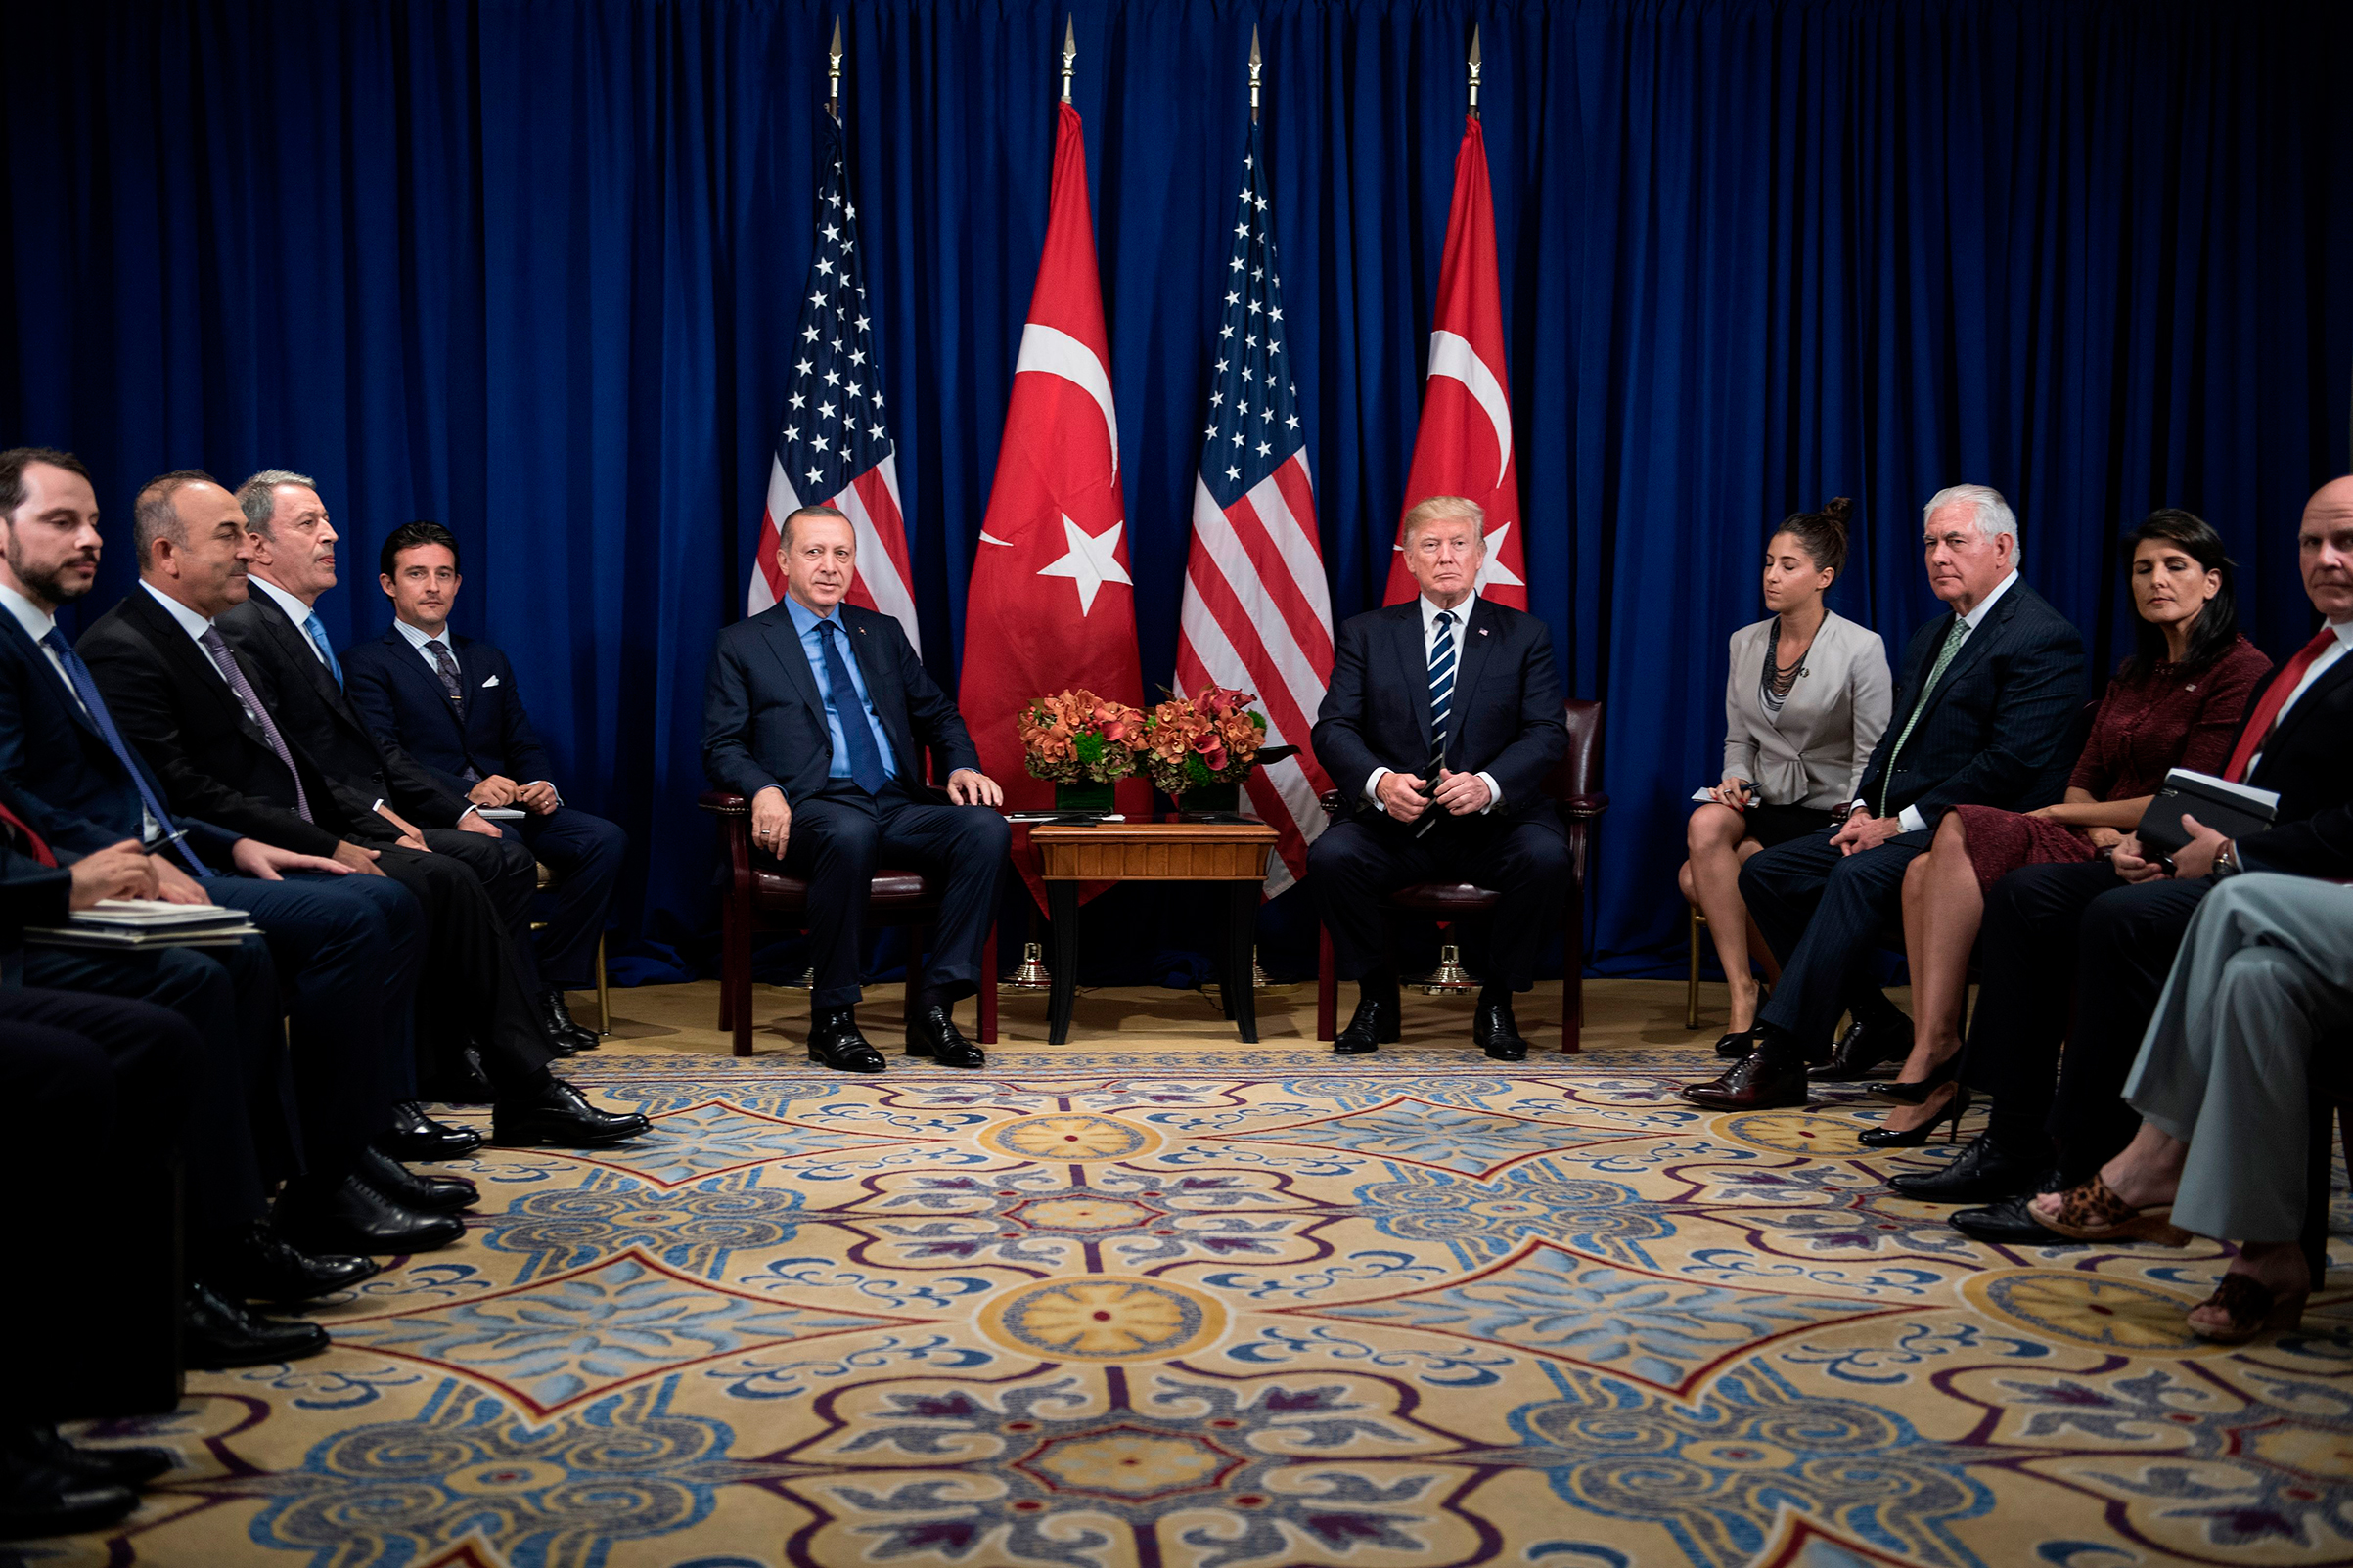 Turkey's President Recep Tayyip Erdogan and US President Donald Trump wait for a meeting at the Palace Hotel during the 72nd United Nations General Assembly Sept. 21, 2017 in New York City.